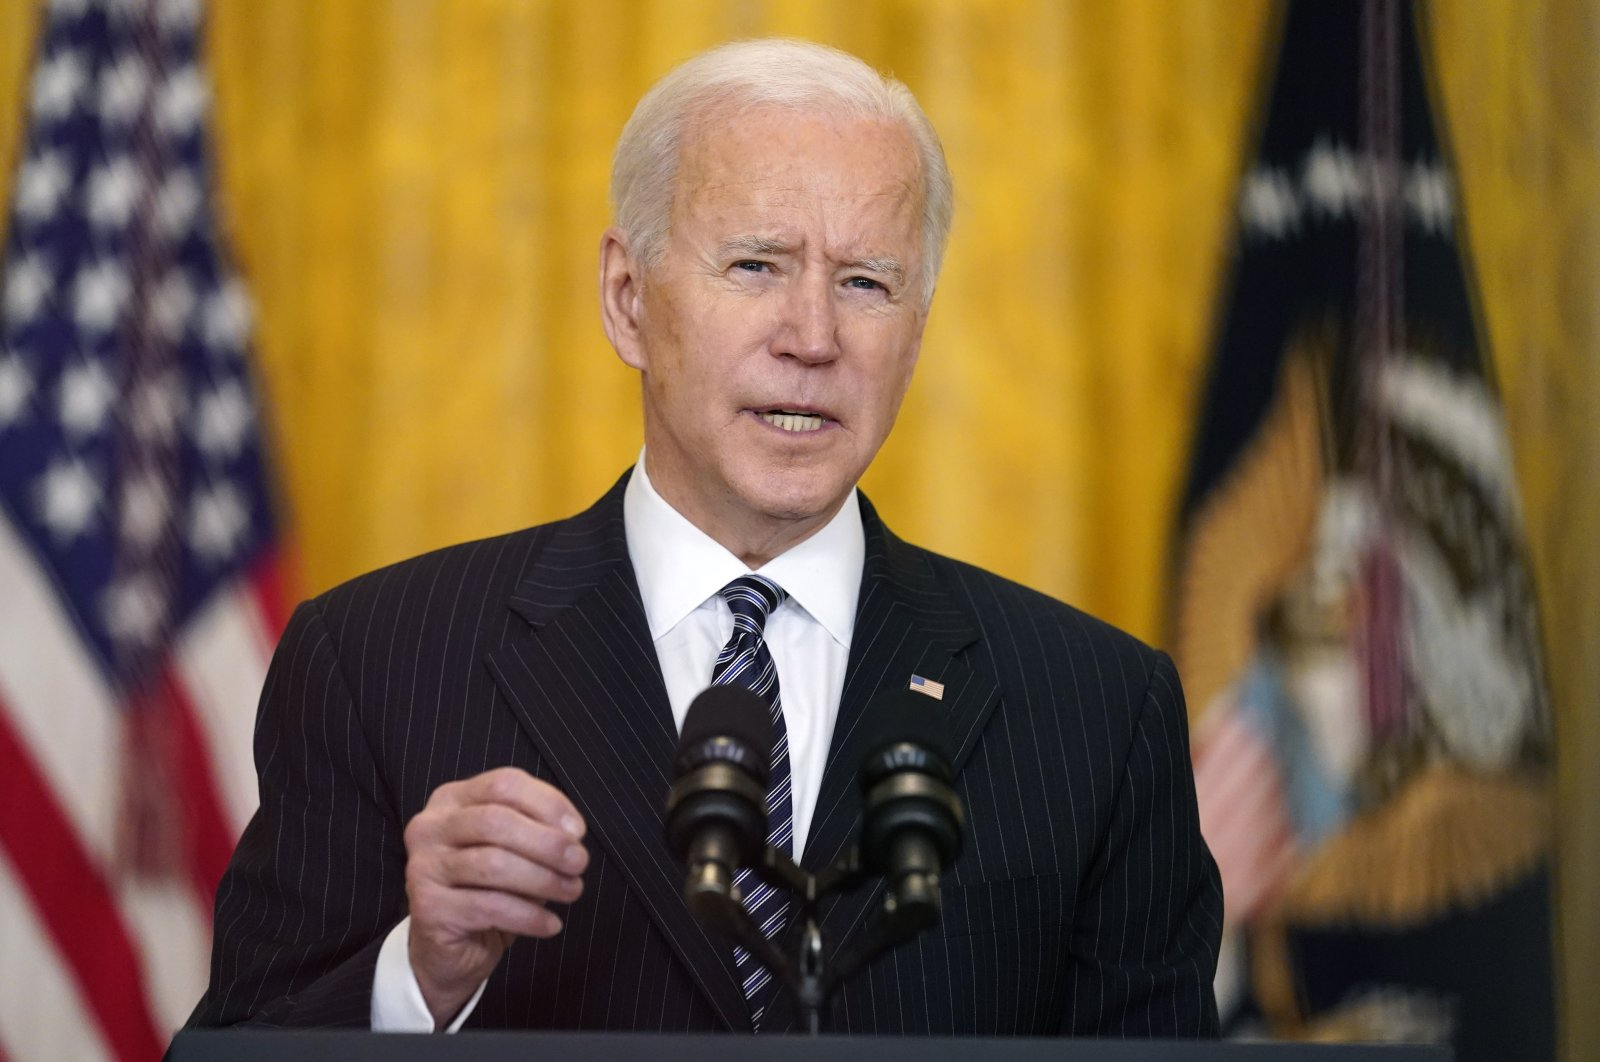 U.S. President Joe Biden speaks about COVID-19 vaccinations, from the East Room of the White House, Washington, D.C., U.S., March 18, 2021. (AP Photo)